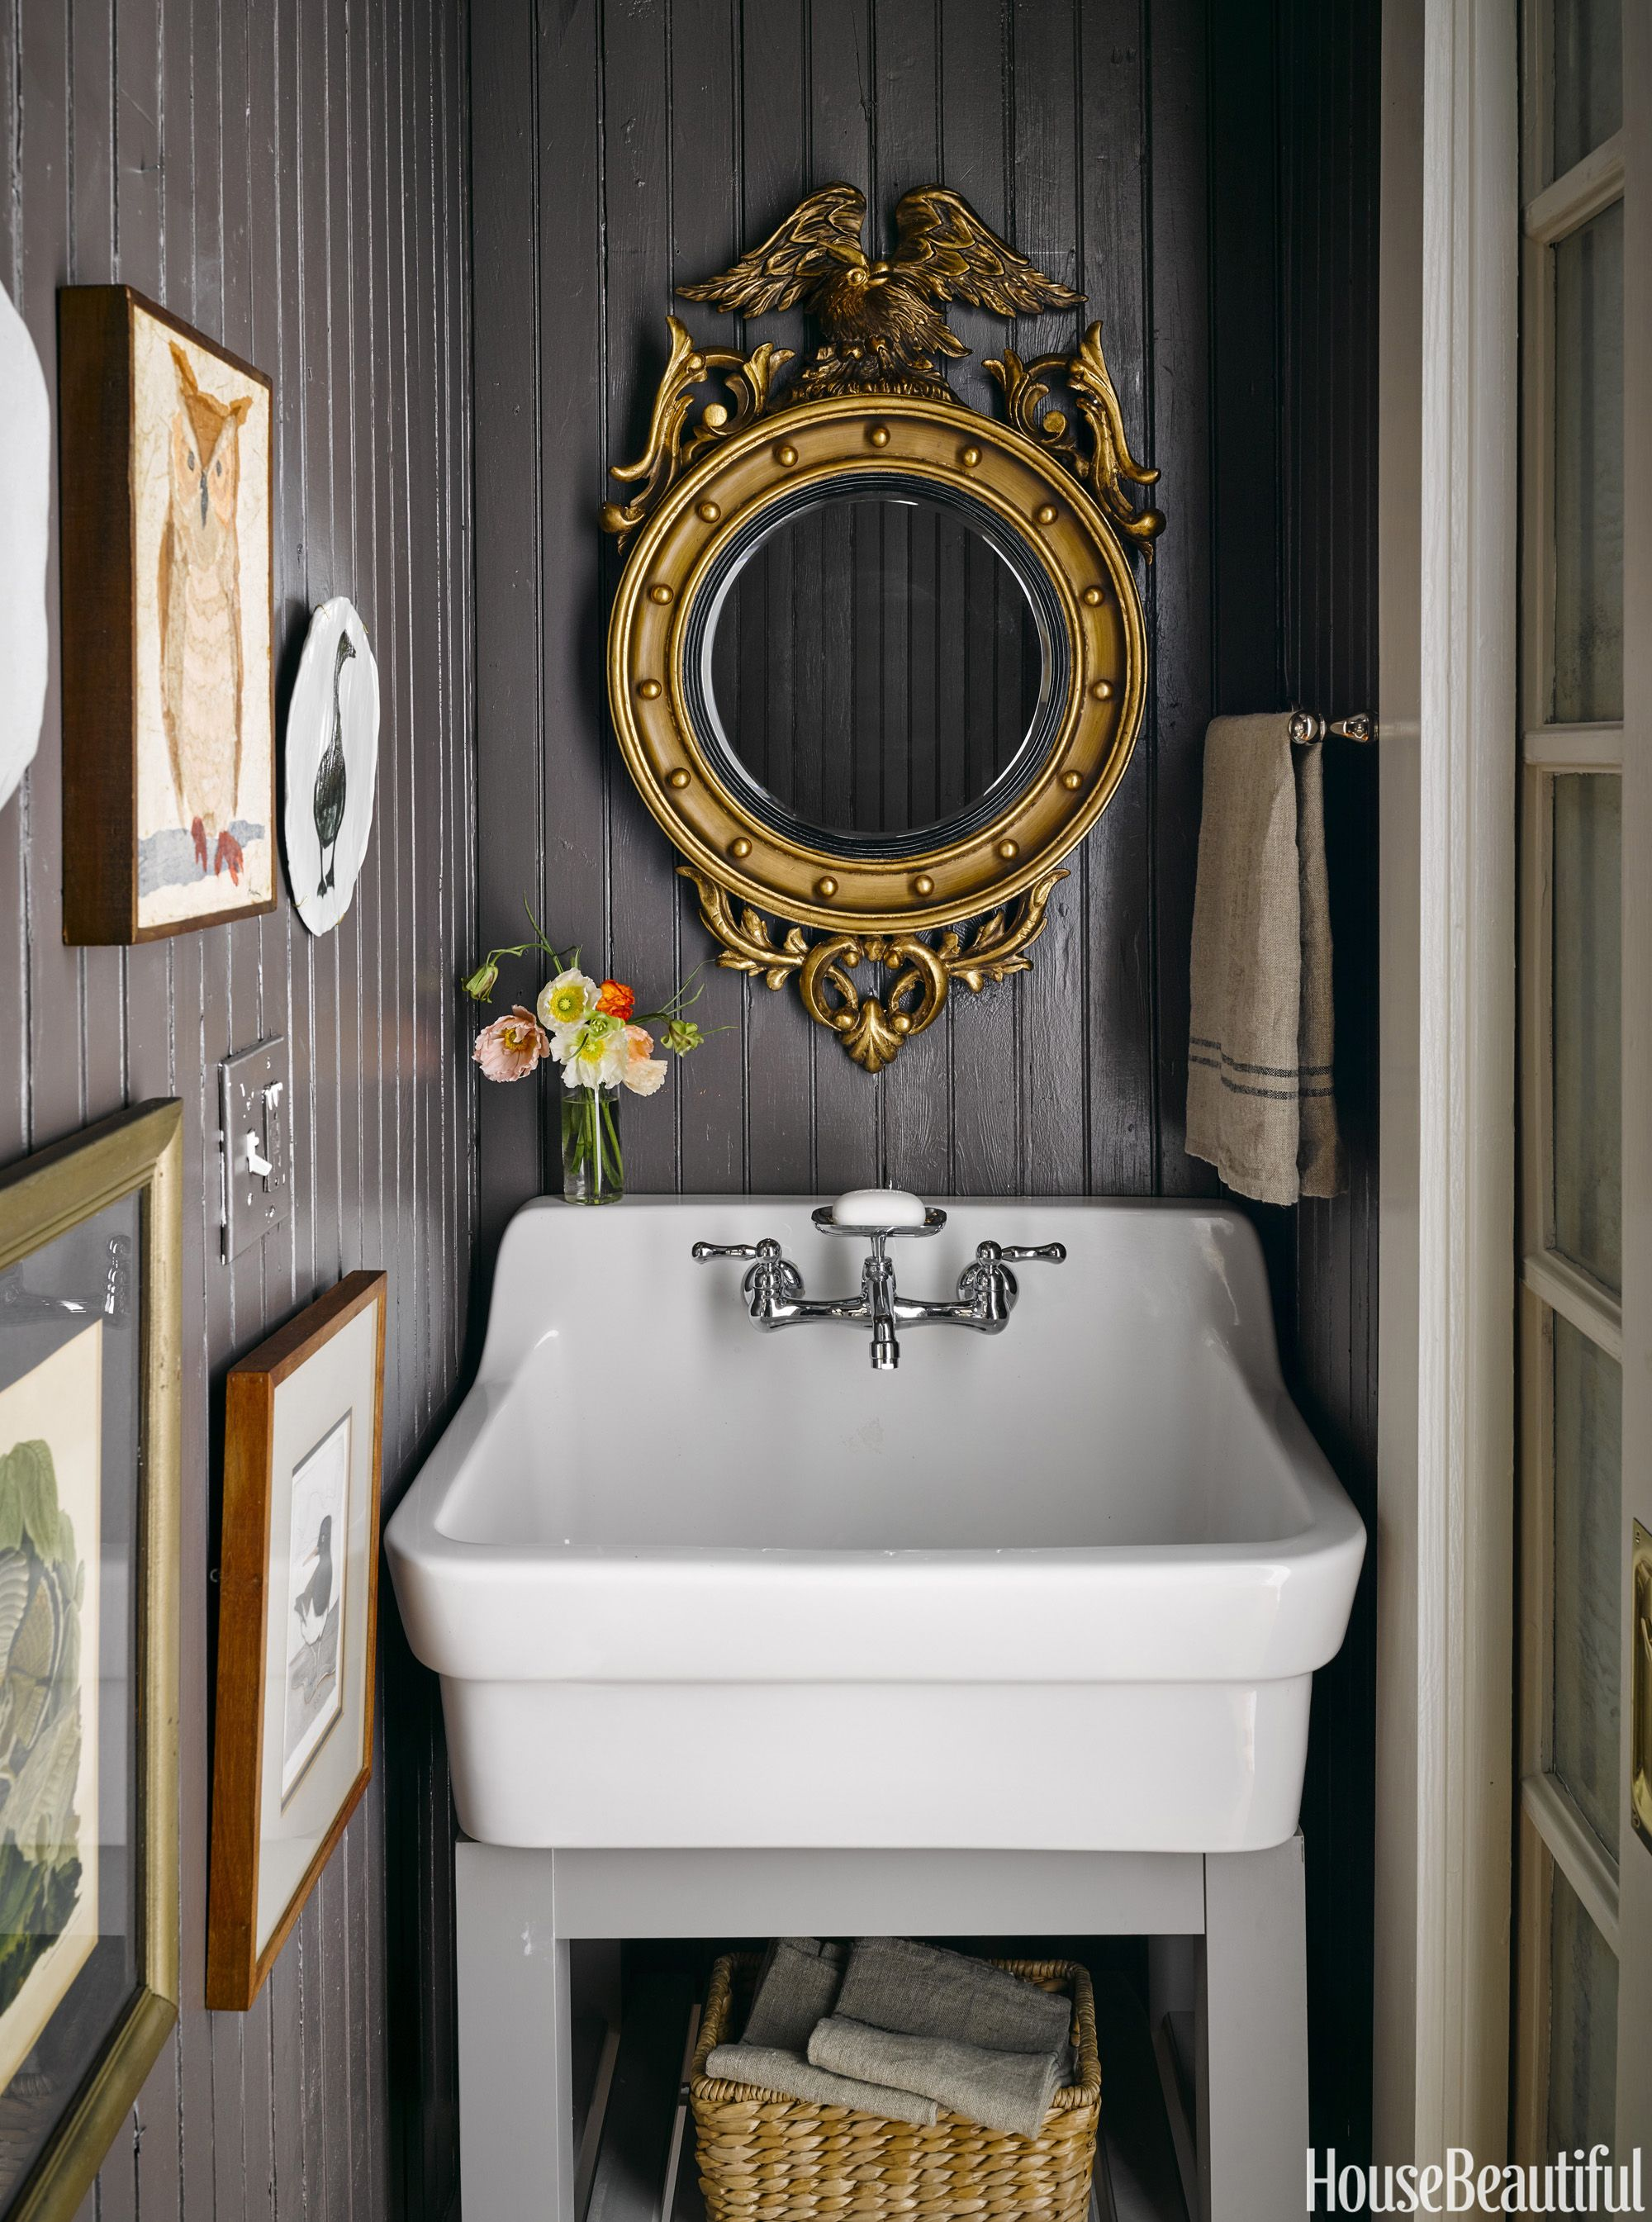 Generous Painting A Tub Thick Can You Paint A Tub Solid Reglazing Tub Cost Bathtub Pics Young Miracle Method Refinishing PinkGlaze Tub Tour Our 2015 Kitchen Of The Year | More Country Sink, Powder Room ..